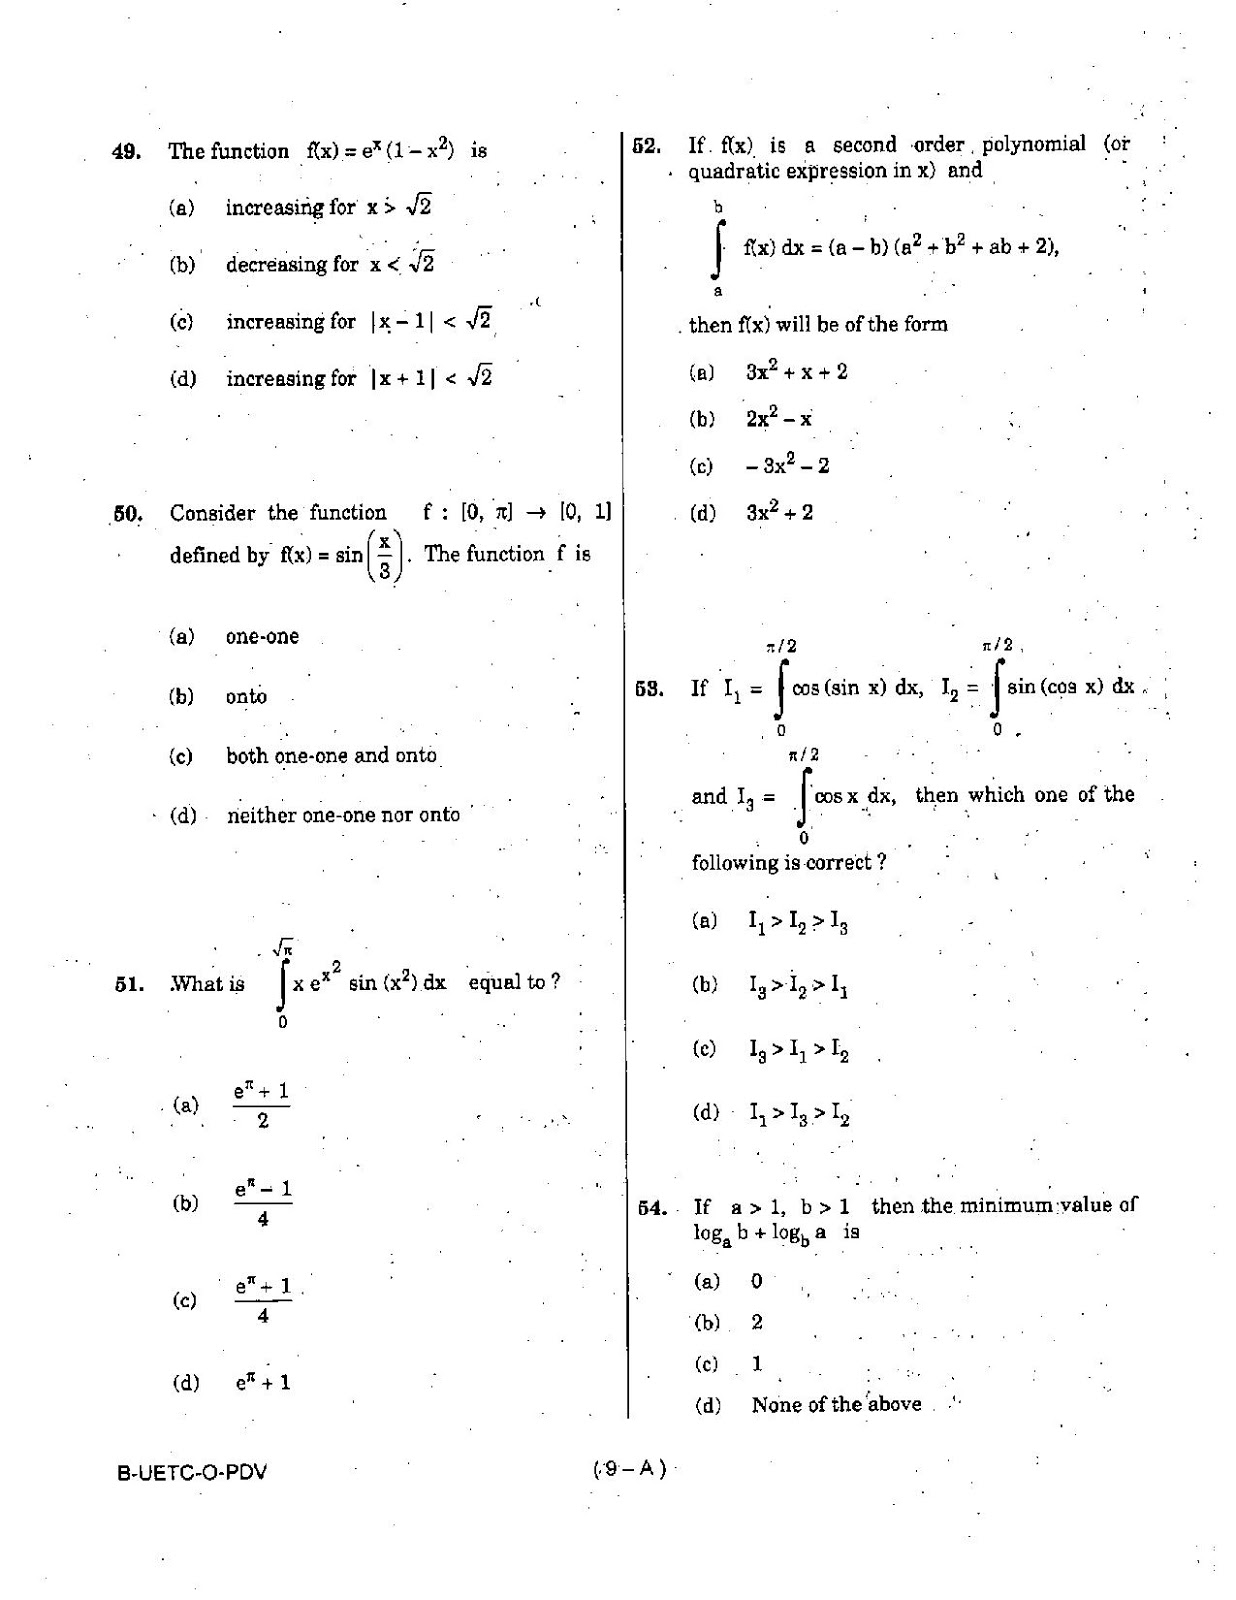 UPSC 2015 Mathematics Question Paper